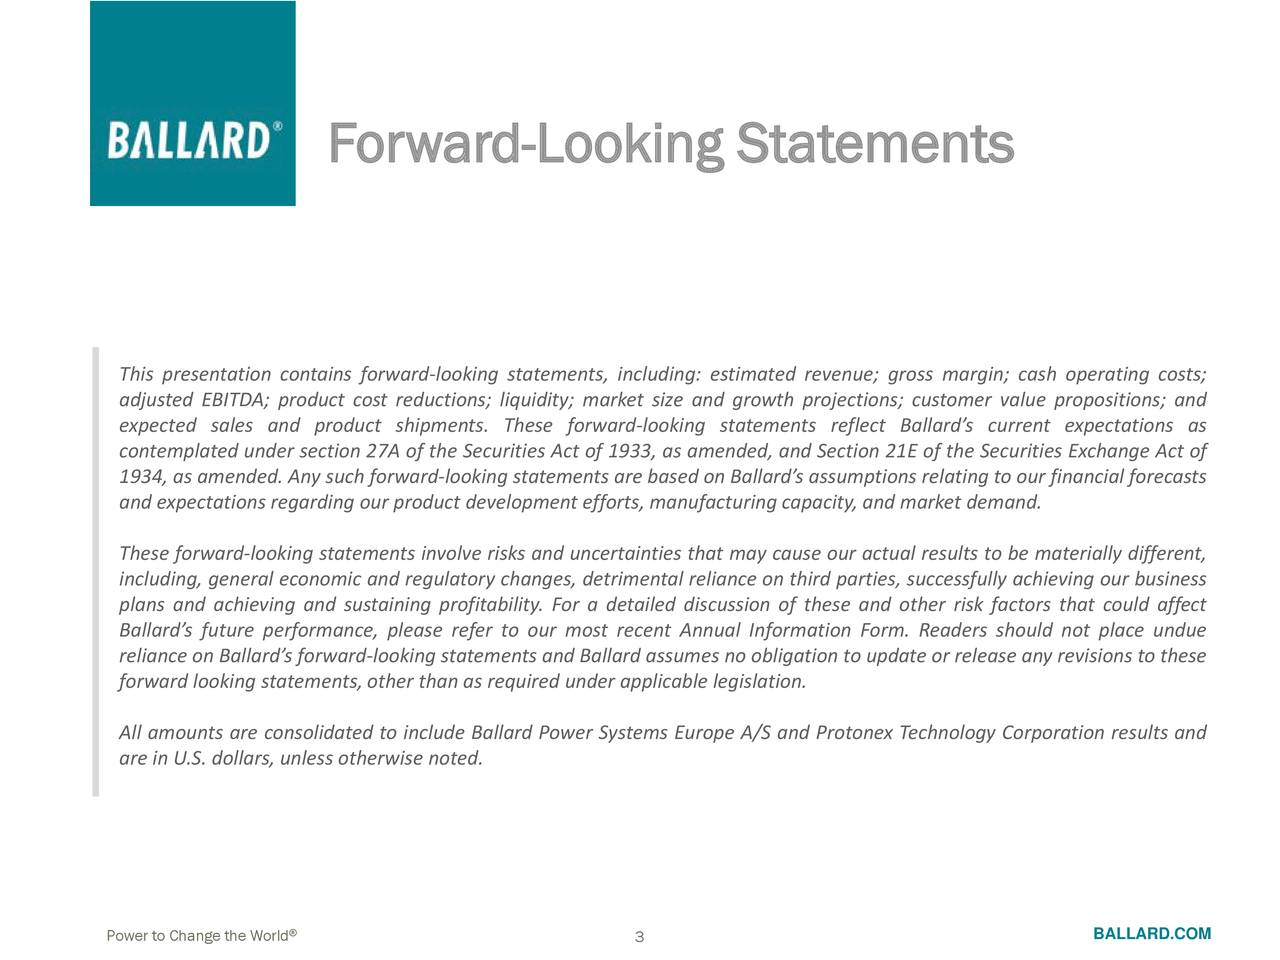 This presentation contains forward-looking statements, including: estimated revenue; gross margin; cash operating costs; adjusted EBITDA; product cost reductions; liquidity; market size and growth projections; customer value propositions; and expected sales and product shipments. These forward-looking statements reflect Ballard's current expectations as contemplated under section 27A of the Securities Act of 1933, as amended, and Section 21E of the Securities Exchange Act of 1934, as amended. Any such forward-looking statementsare based on Ballard's assumptionsrelating to our financial forecasts and expectationsregarding our product developmentefforts,manufacturingcapacity,and marketdemand. These forward-looking statements involve risks and uncertainties that may cause our actual results to be materially different, including, general economic and regulatory changes, detrimental reliance on third parties, successfully achieving our business plans and achieving and sustaining profitability. For a detailed discussion of these and other risk factors that could affect Ballard's future performance, please refer to our most recent Annual Information Form. Readers should not place undue reliance on Ballard's forward-looking statementsand Ballard assumes no obligationto update or release anyrevisions to these forward looking statements,other than as required under applicable legislation. All amounts are consolidated to include Ballard PowerSystems Europe A/S and Protonex Technology Corporation results and are in U.S. dollars, unless otherwise noted. Power to Change the World 3 BALLARD.COM